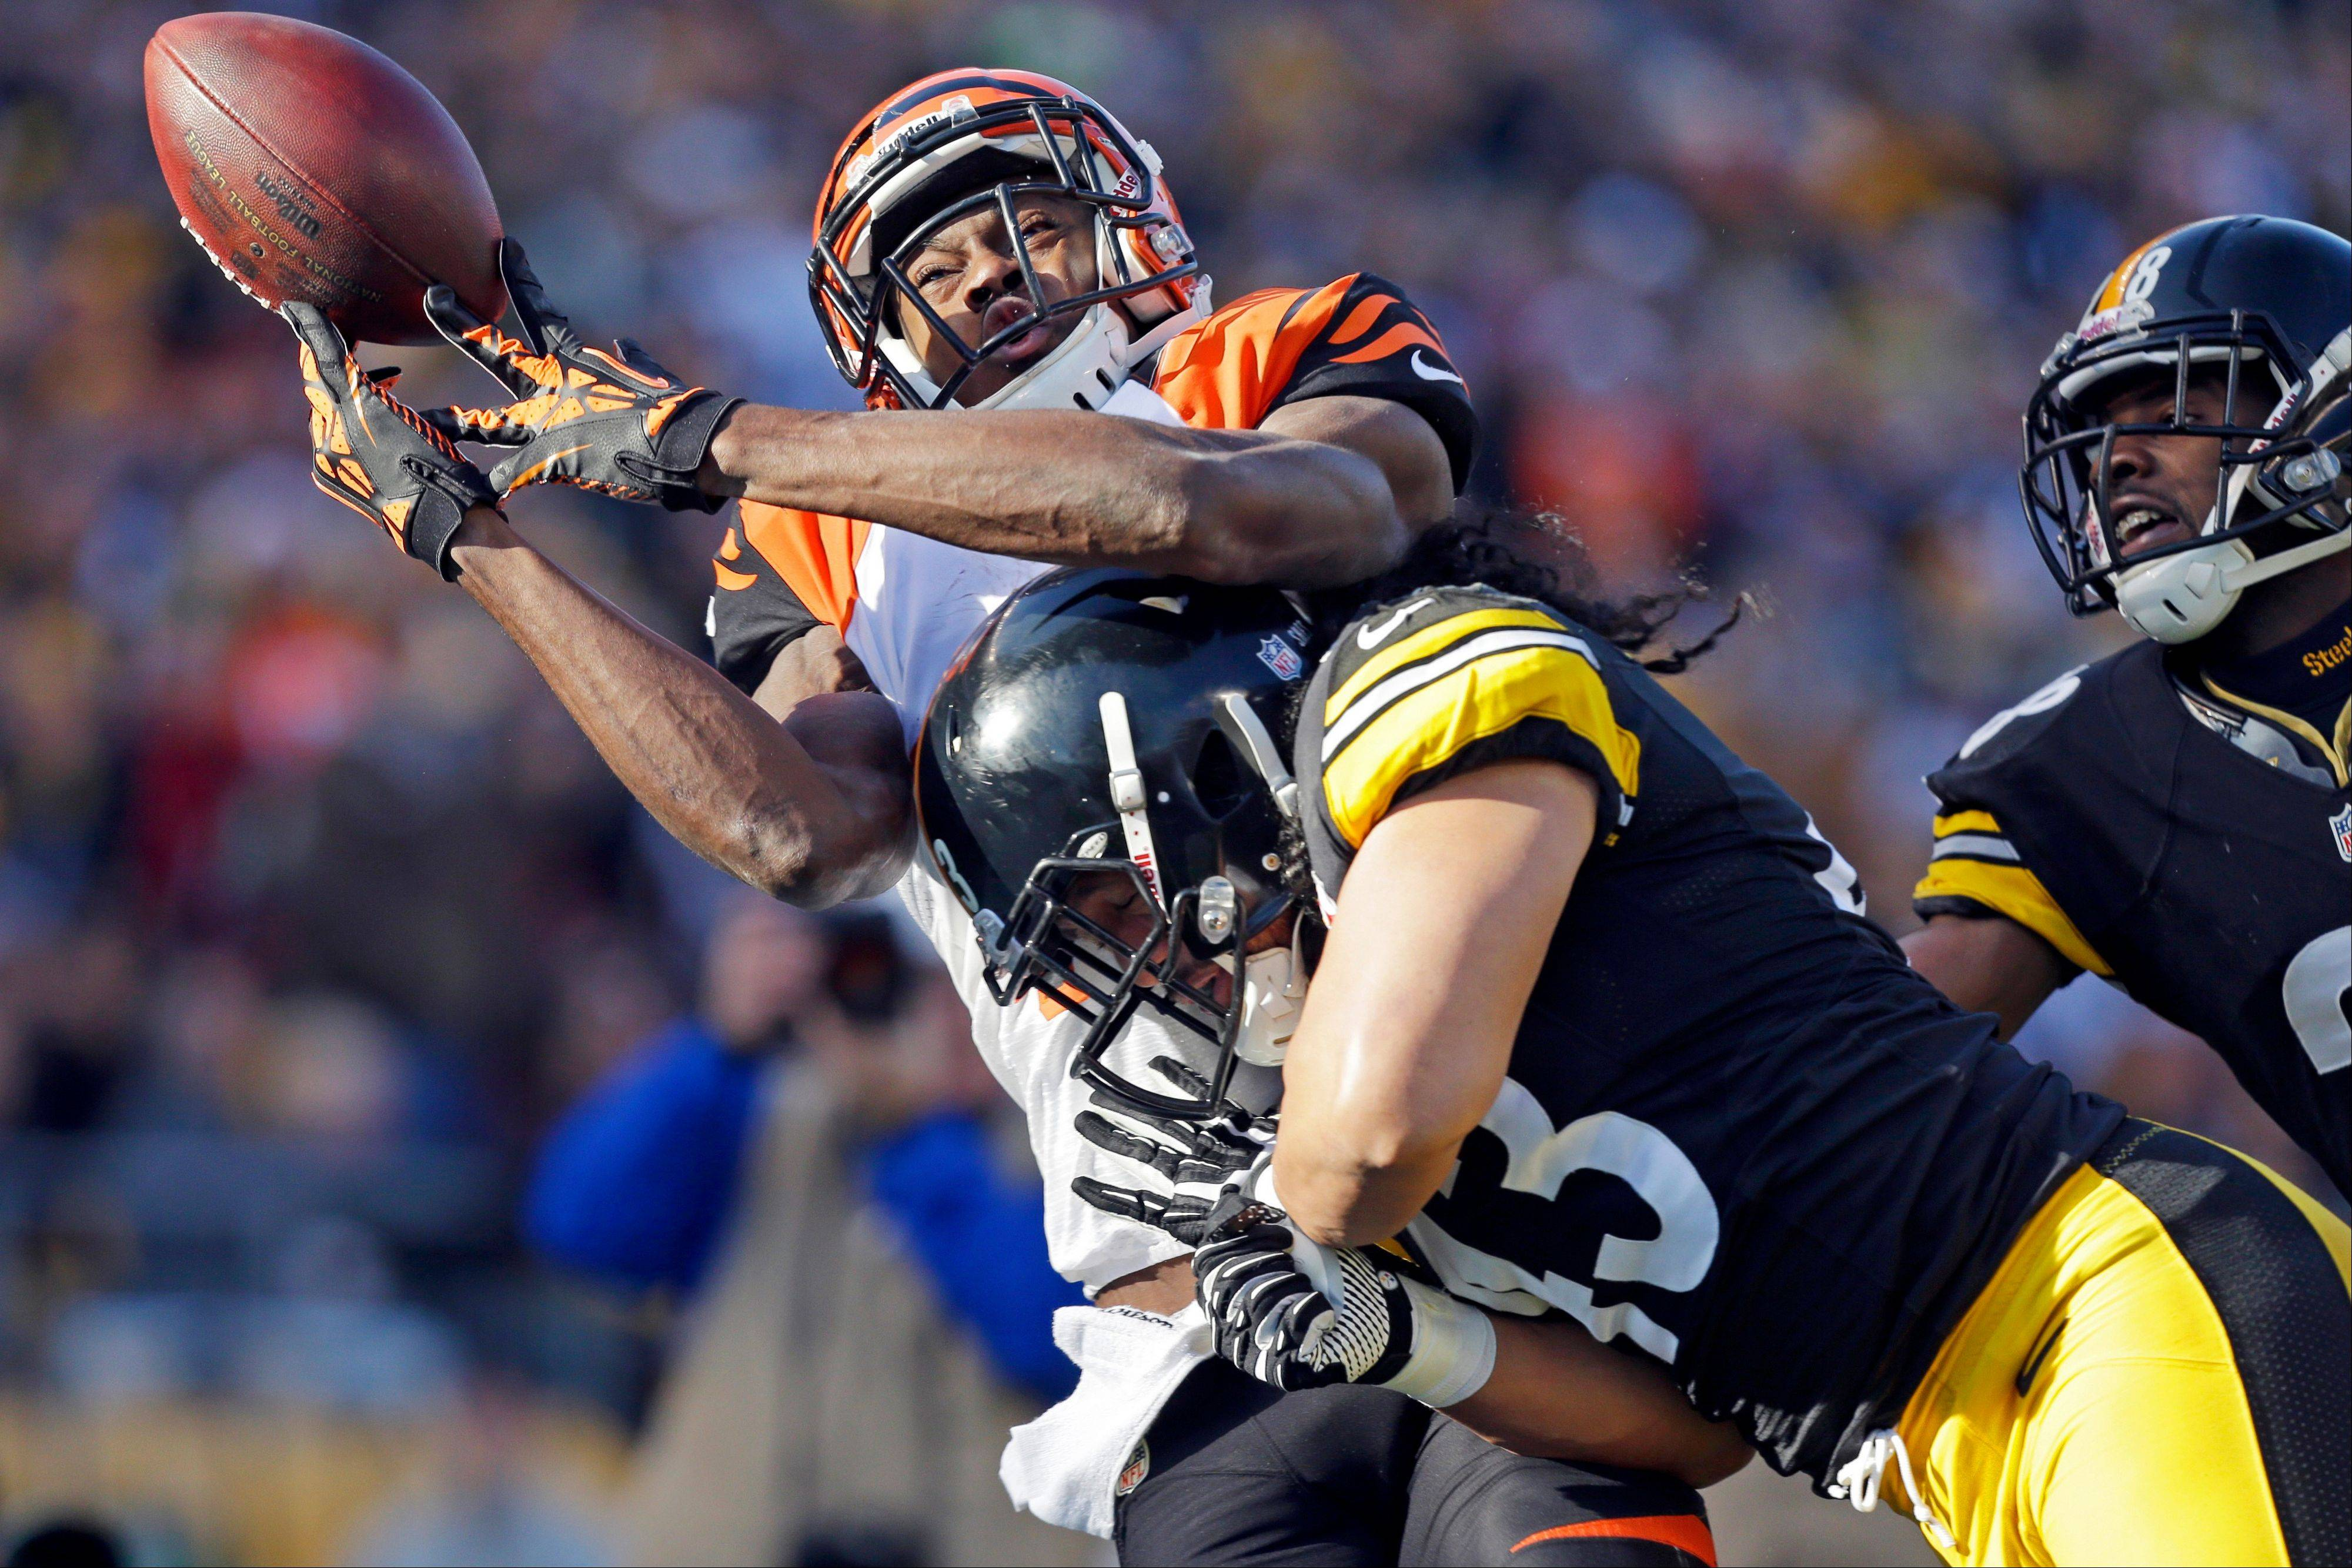 Cincinnati Bengals wide receiver A.J. Green (18) is hit by Pittsburgh Steelers strong safety Troy Polamalu (43) as he tries to catch a pass in the second quarter of an NFL football game in Pittsburgh, Sunday, Dec 23, 2012. The pass was incomplete.